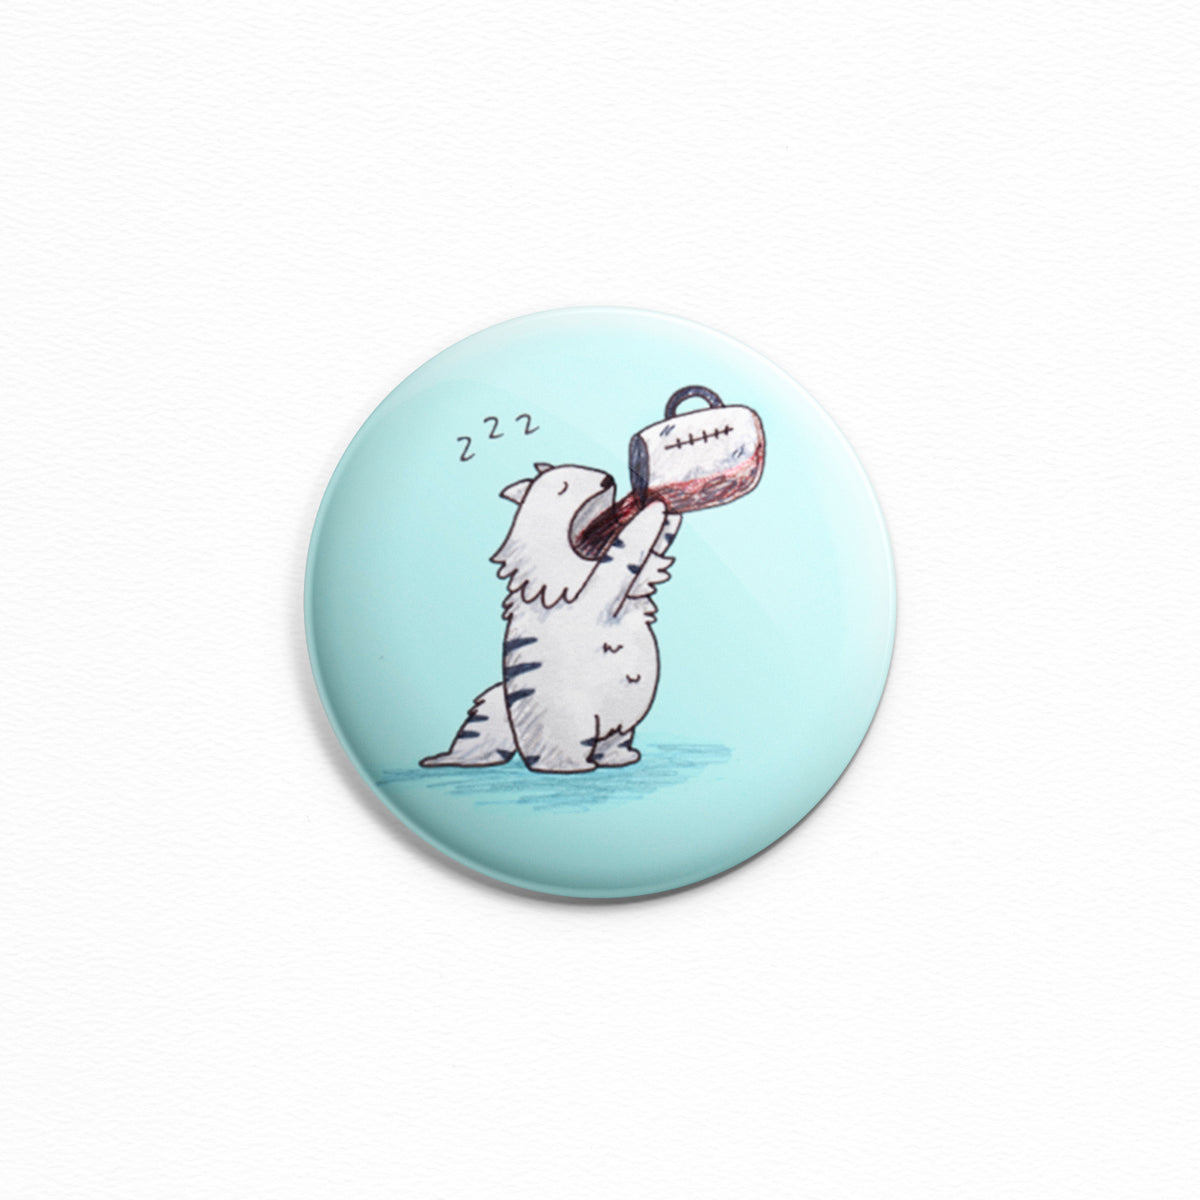 Coffee Cat - Button or magnet with a drawing of a sleepy kitty drinking an entire pot of coffee, probably on a Monday.